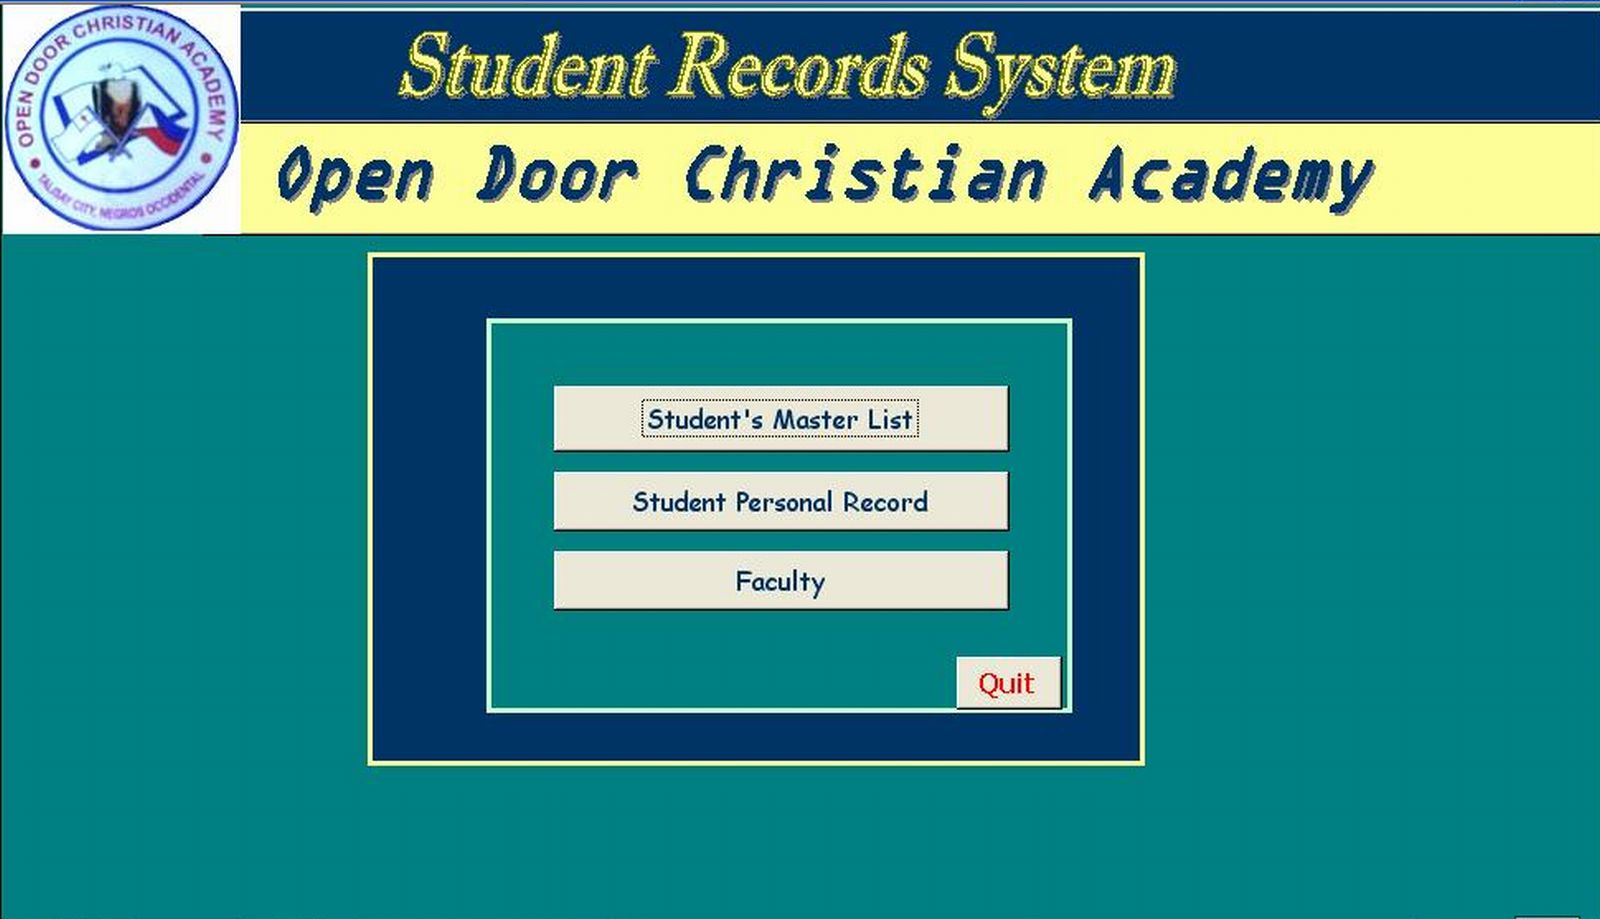 student record What is student records student records is a web-based service that allows students to manage their personal information at king's it also allows academic and administrative staff to view course/student information and perform student administration tasks online.